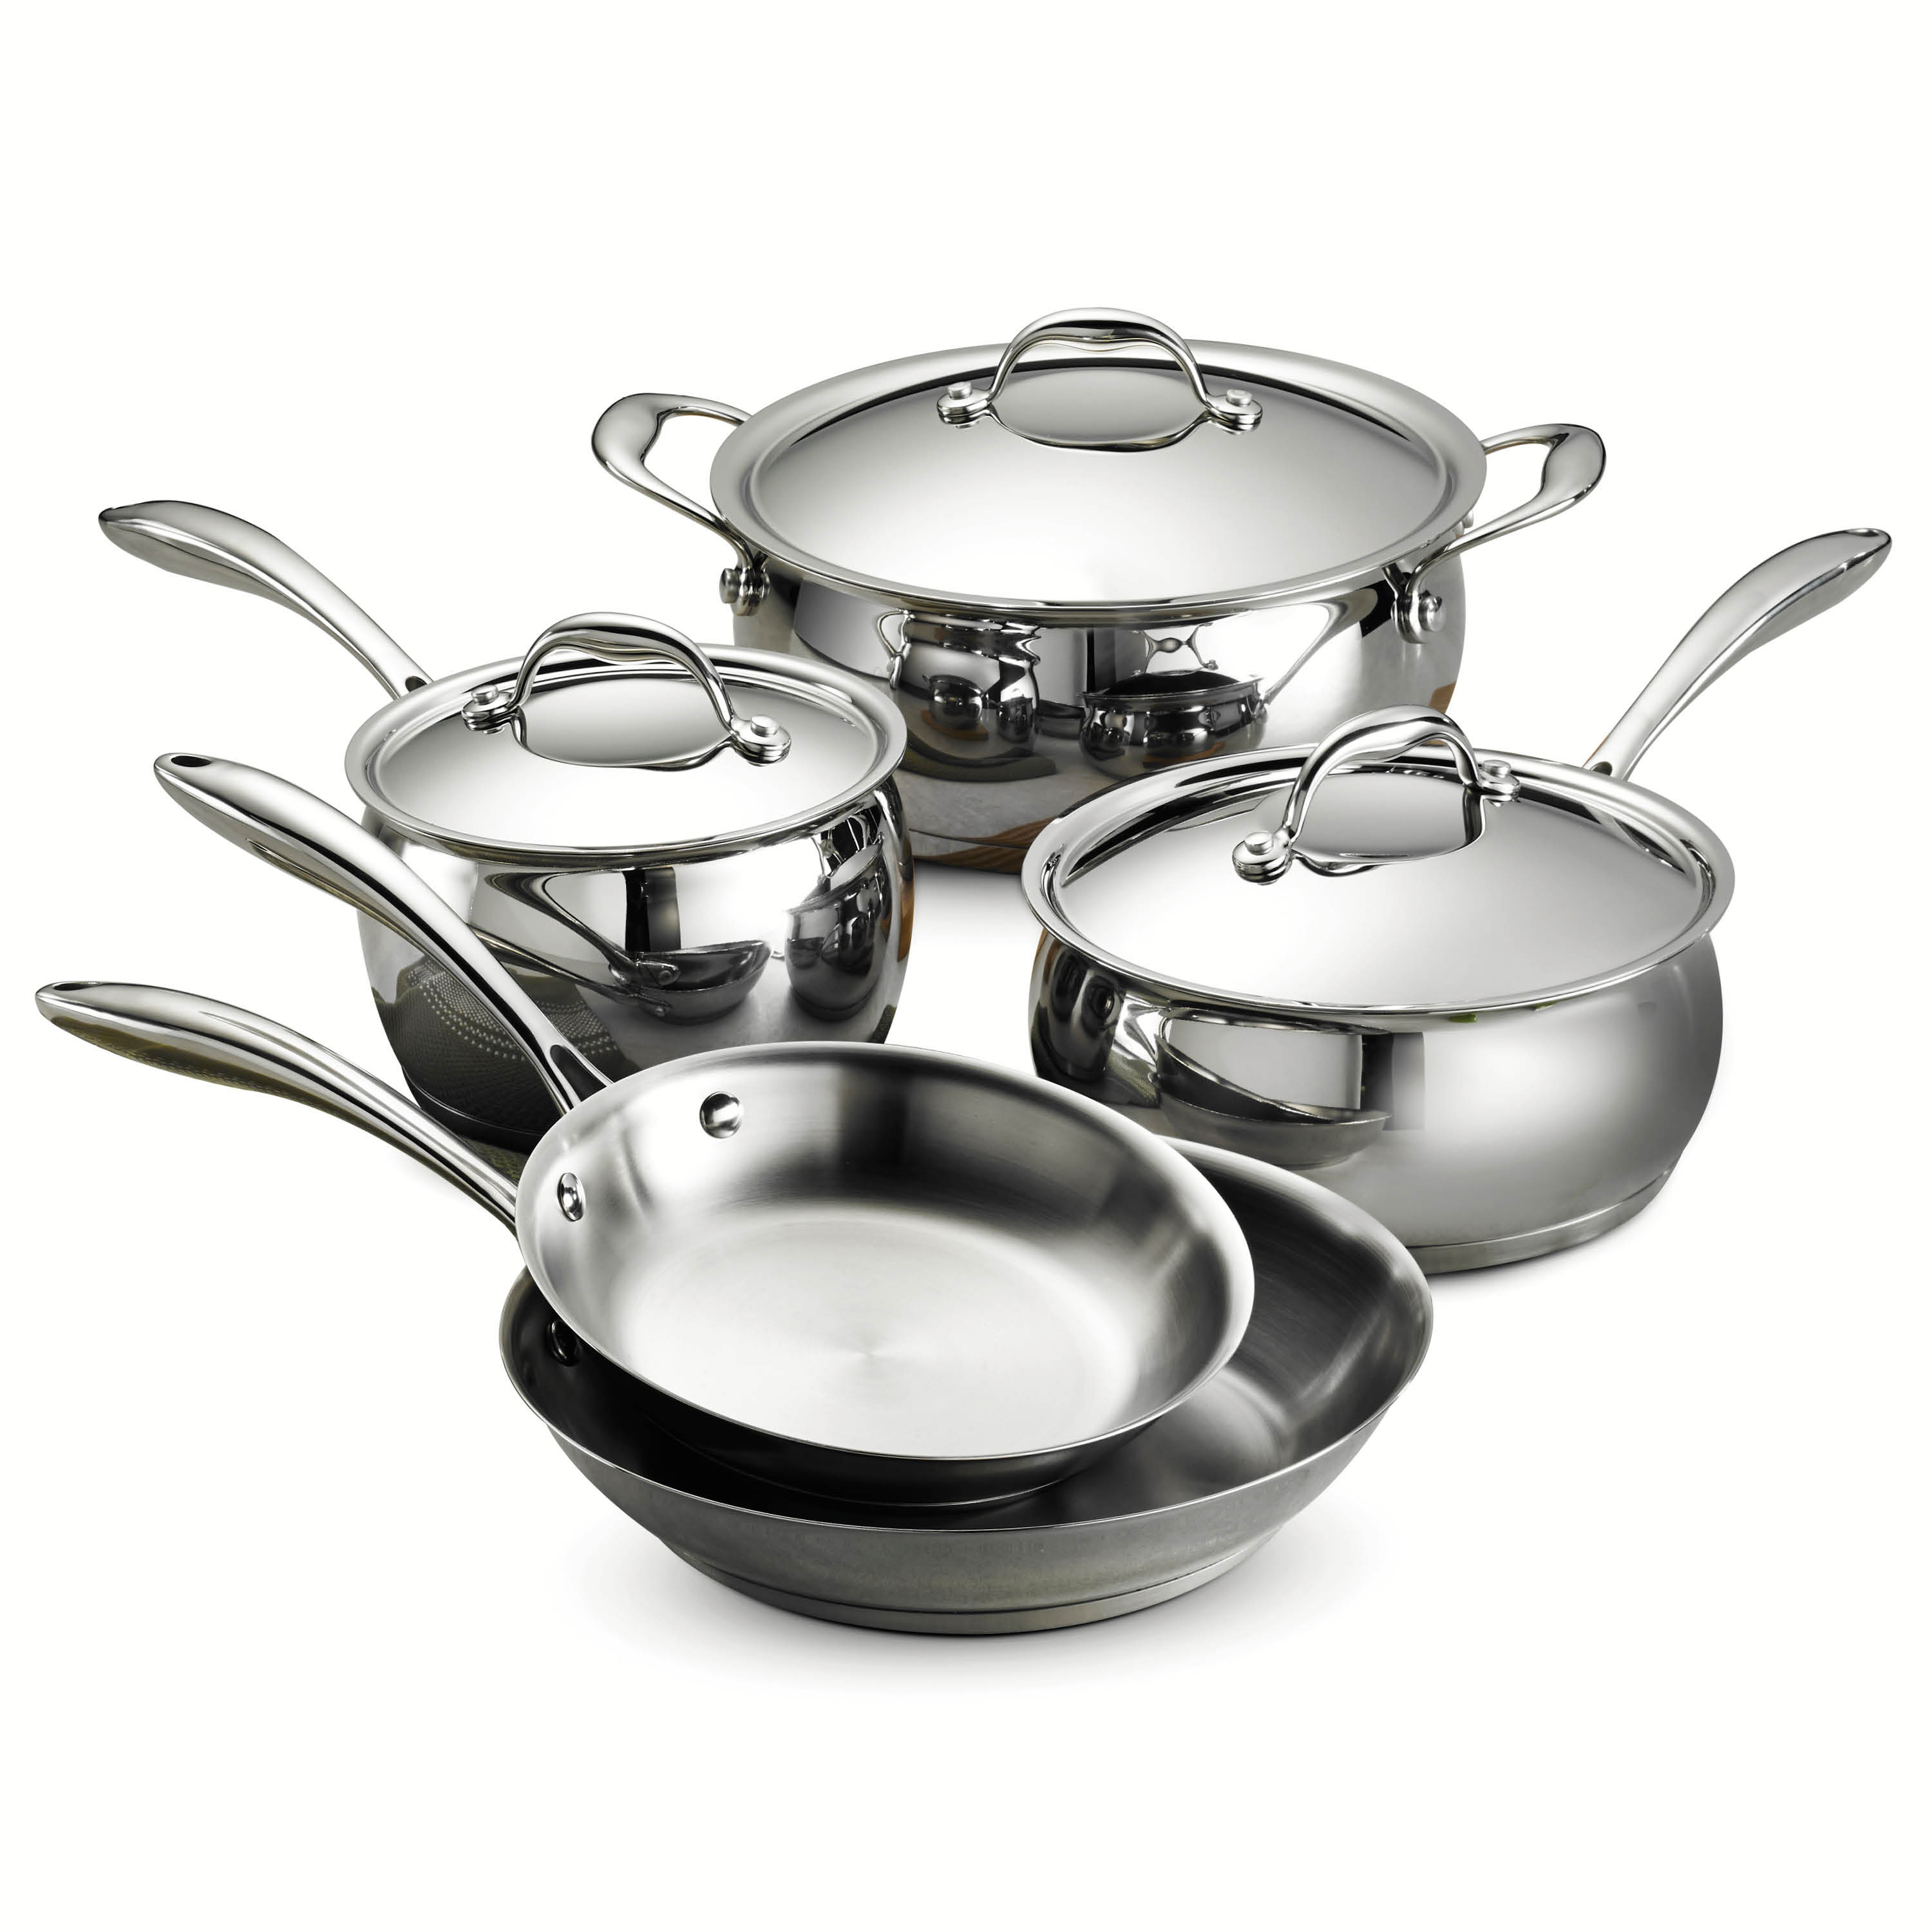 New Tramontina Domus Tri Ply Base Stainless Steel 8 Piece